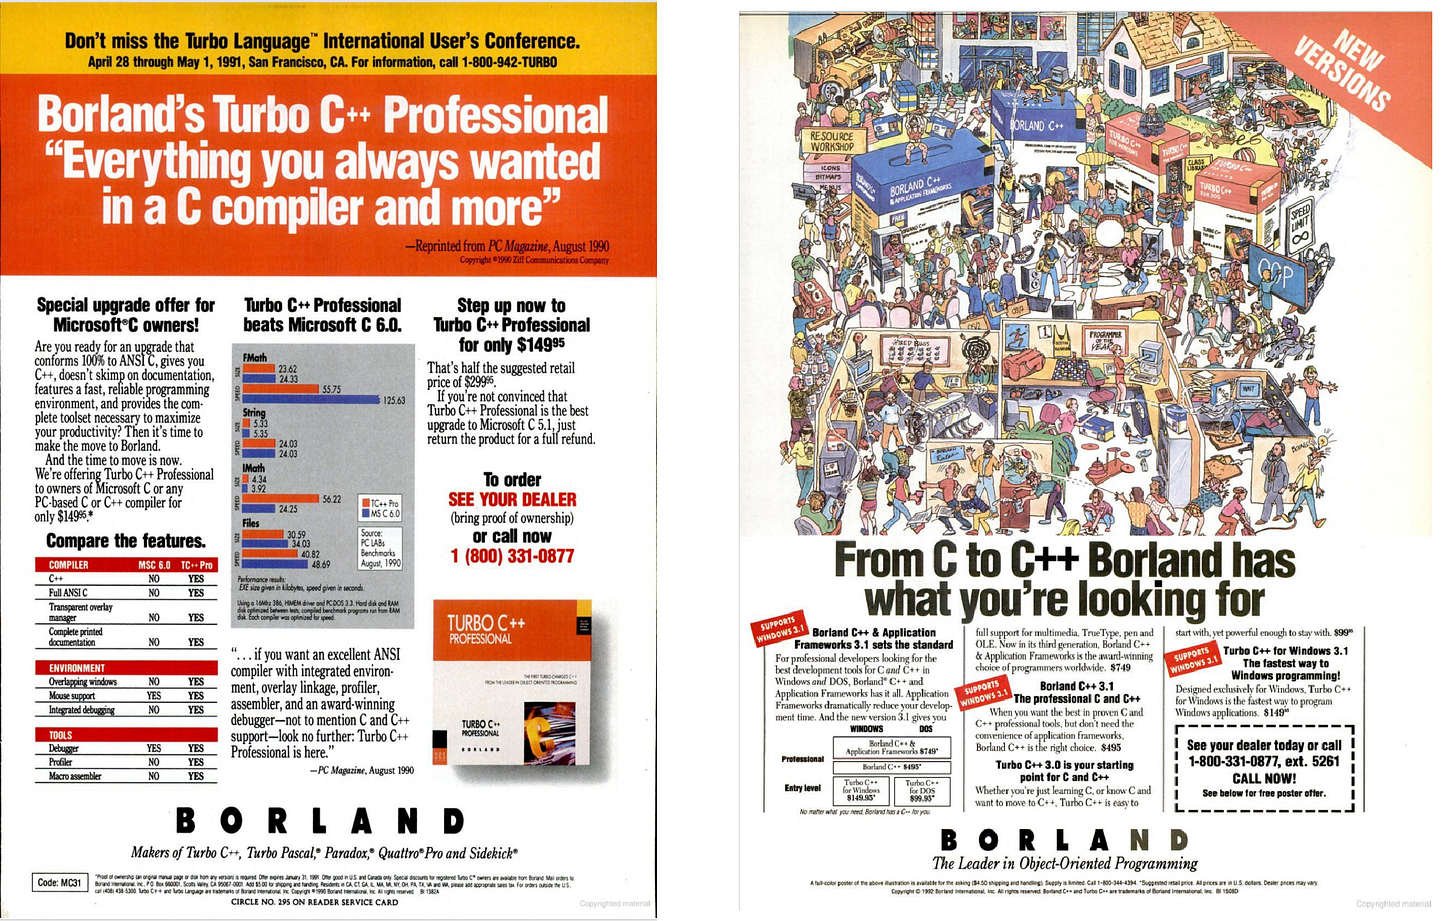 Advertisements for Borland C++